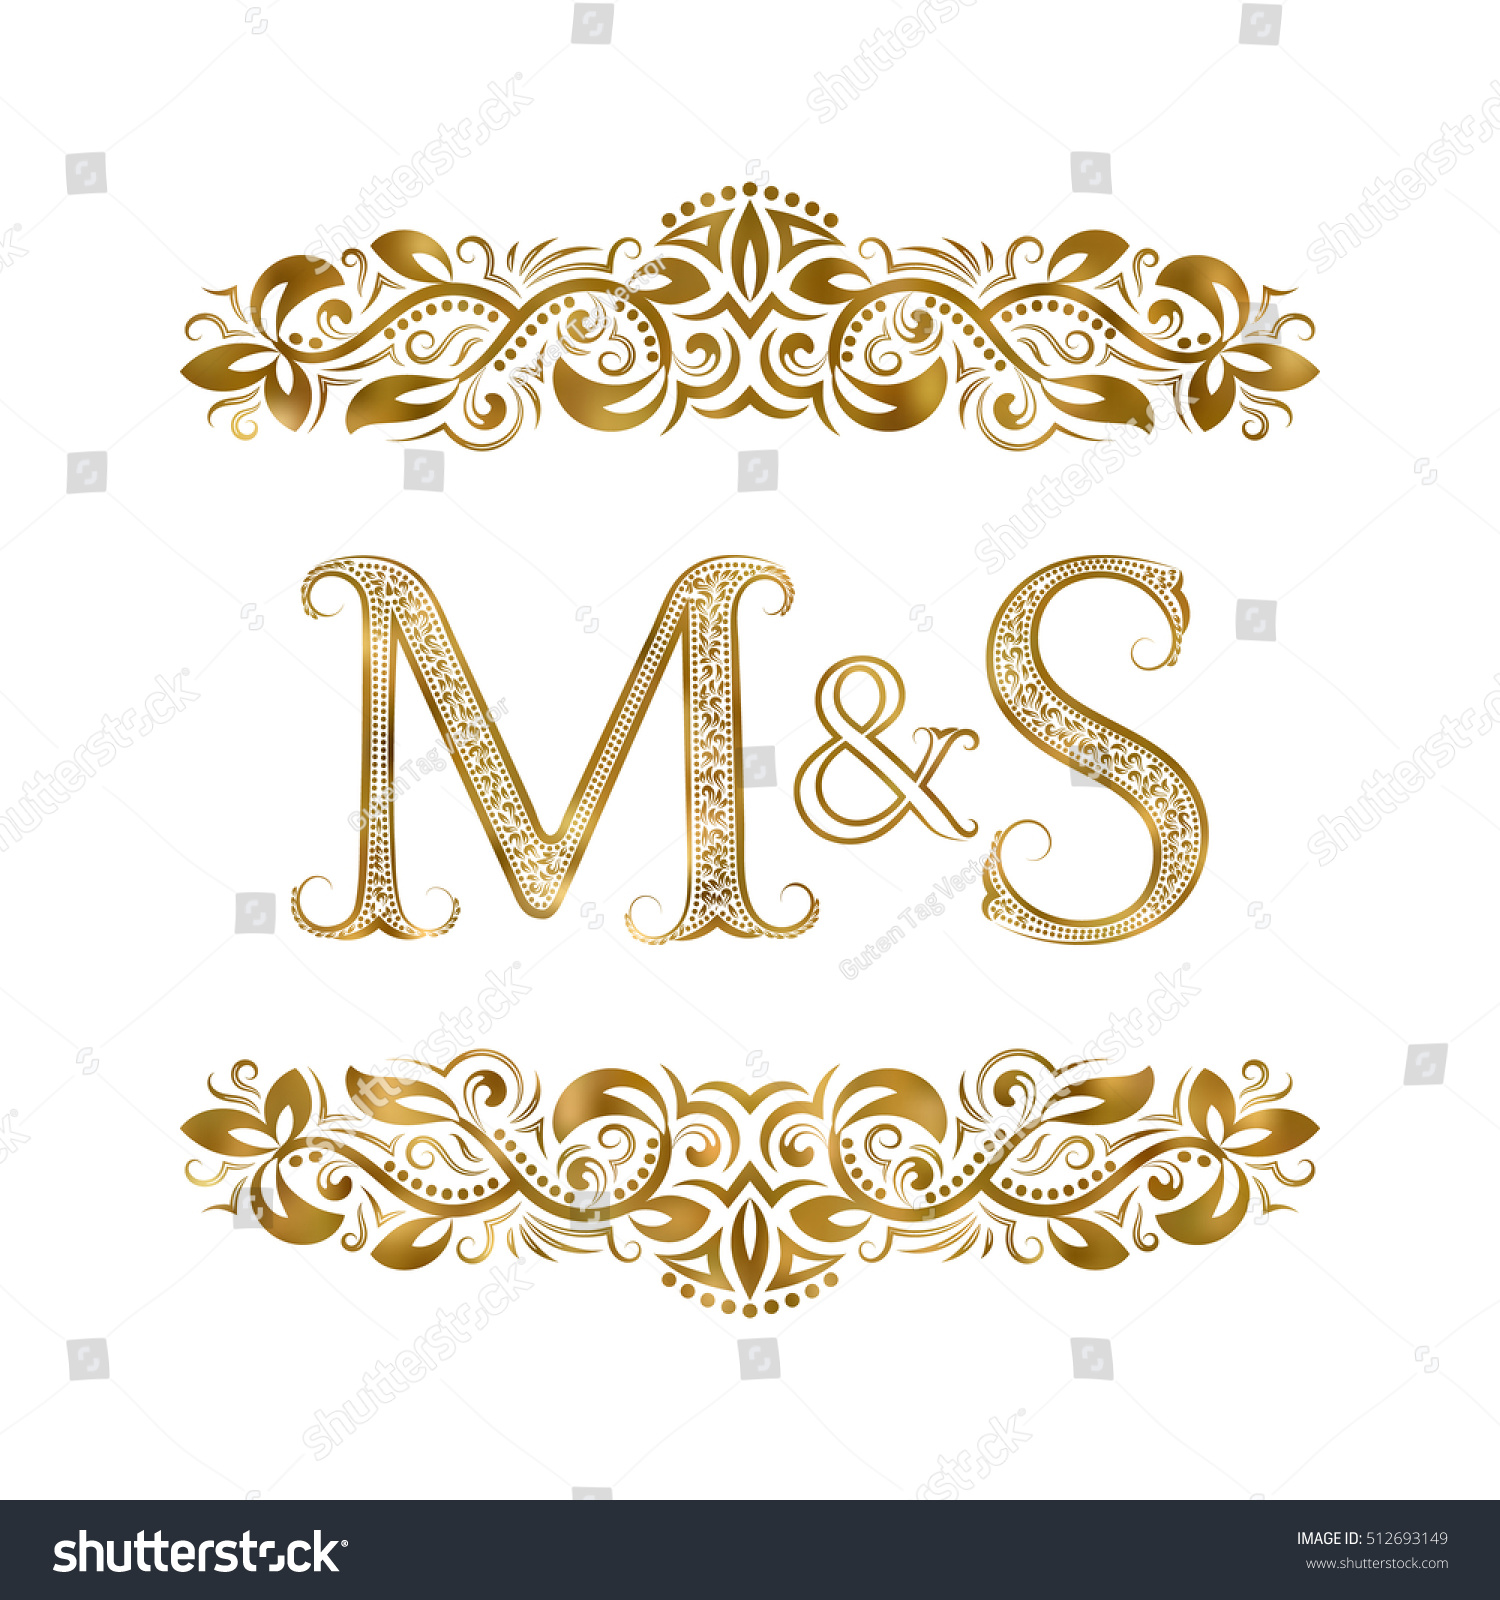 M S Vintage Initials Logo Symbol Stock Vector Royalty Free